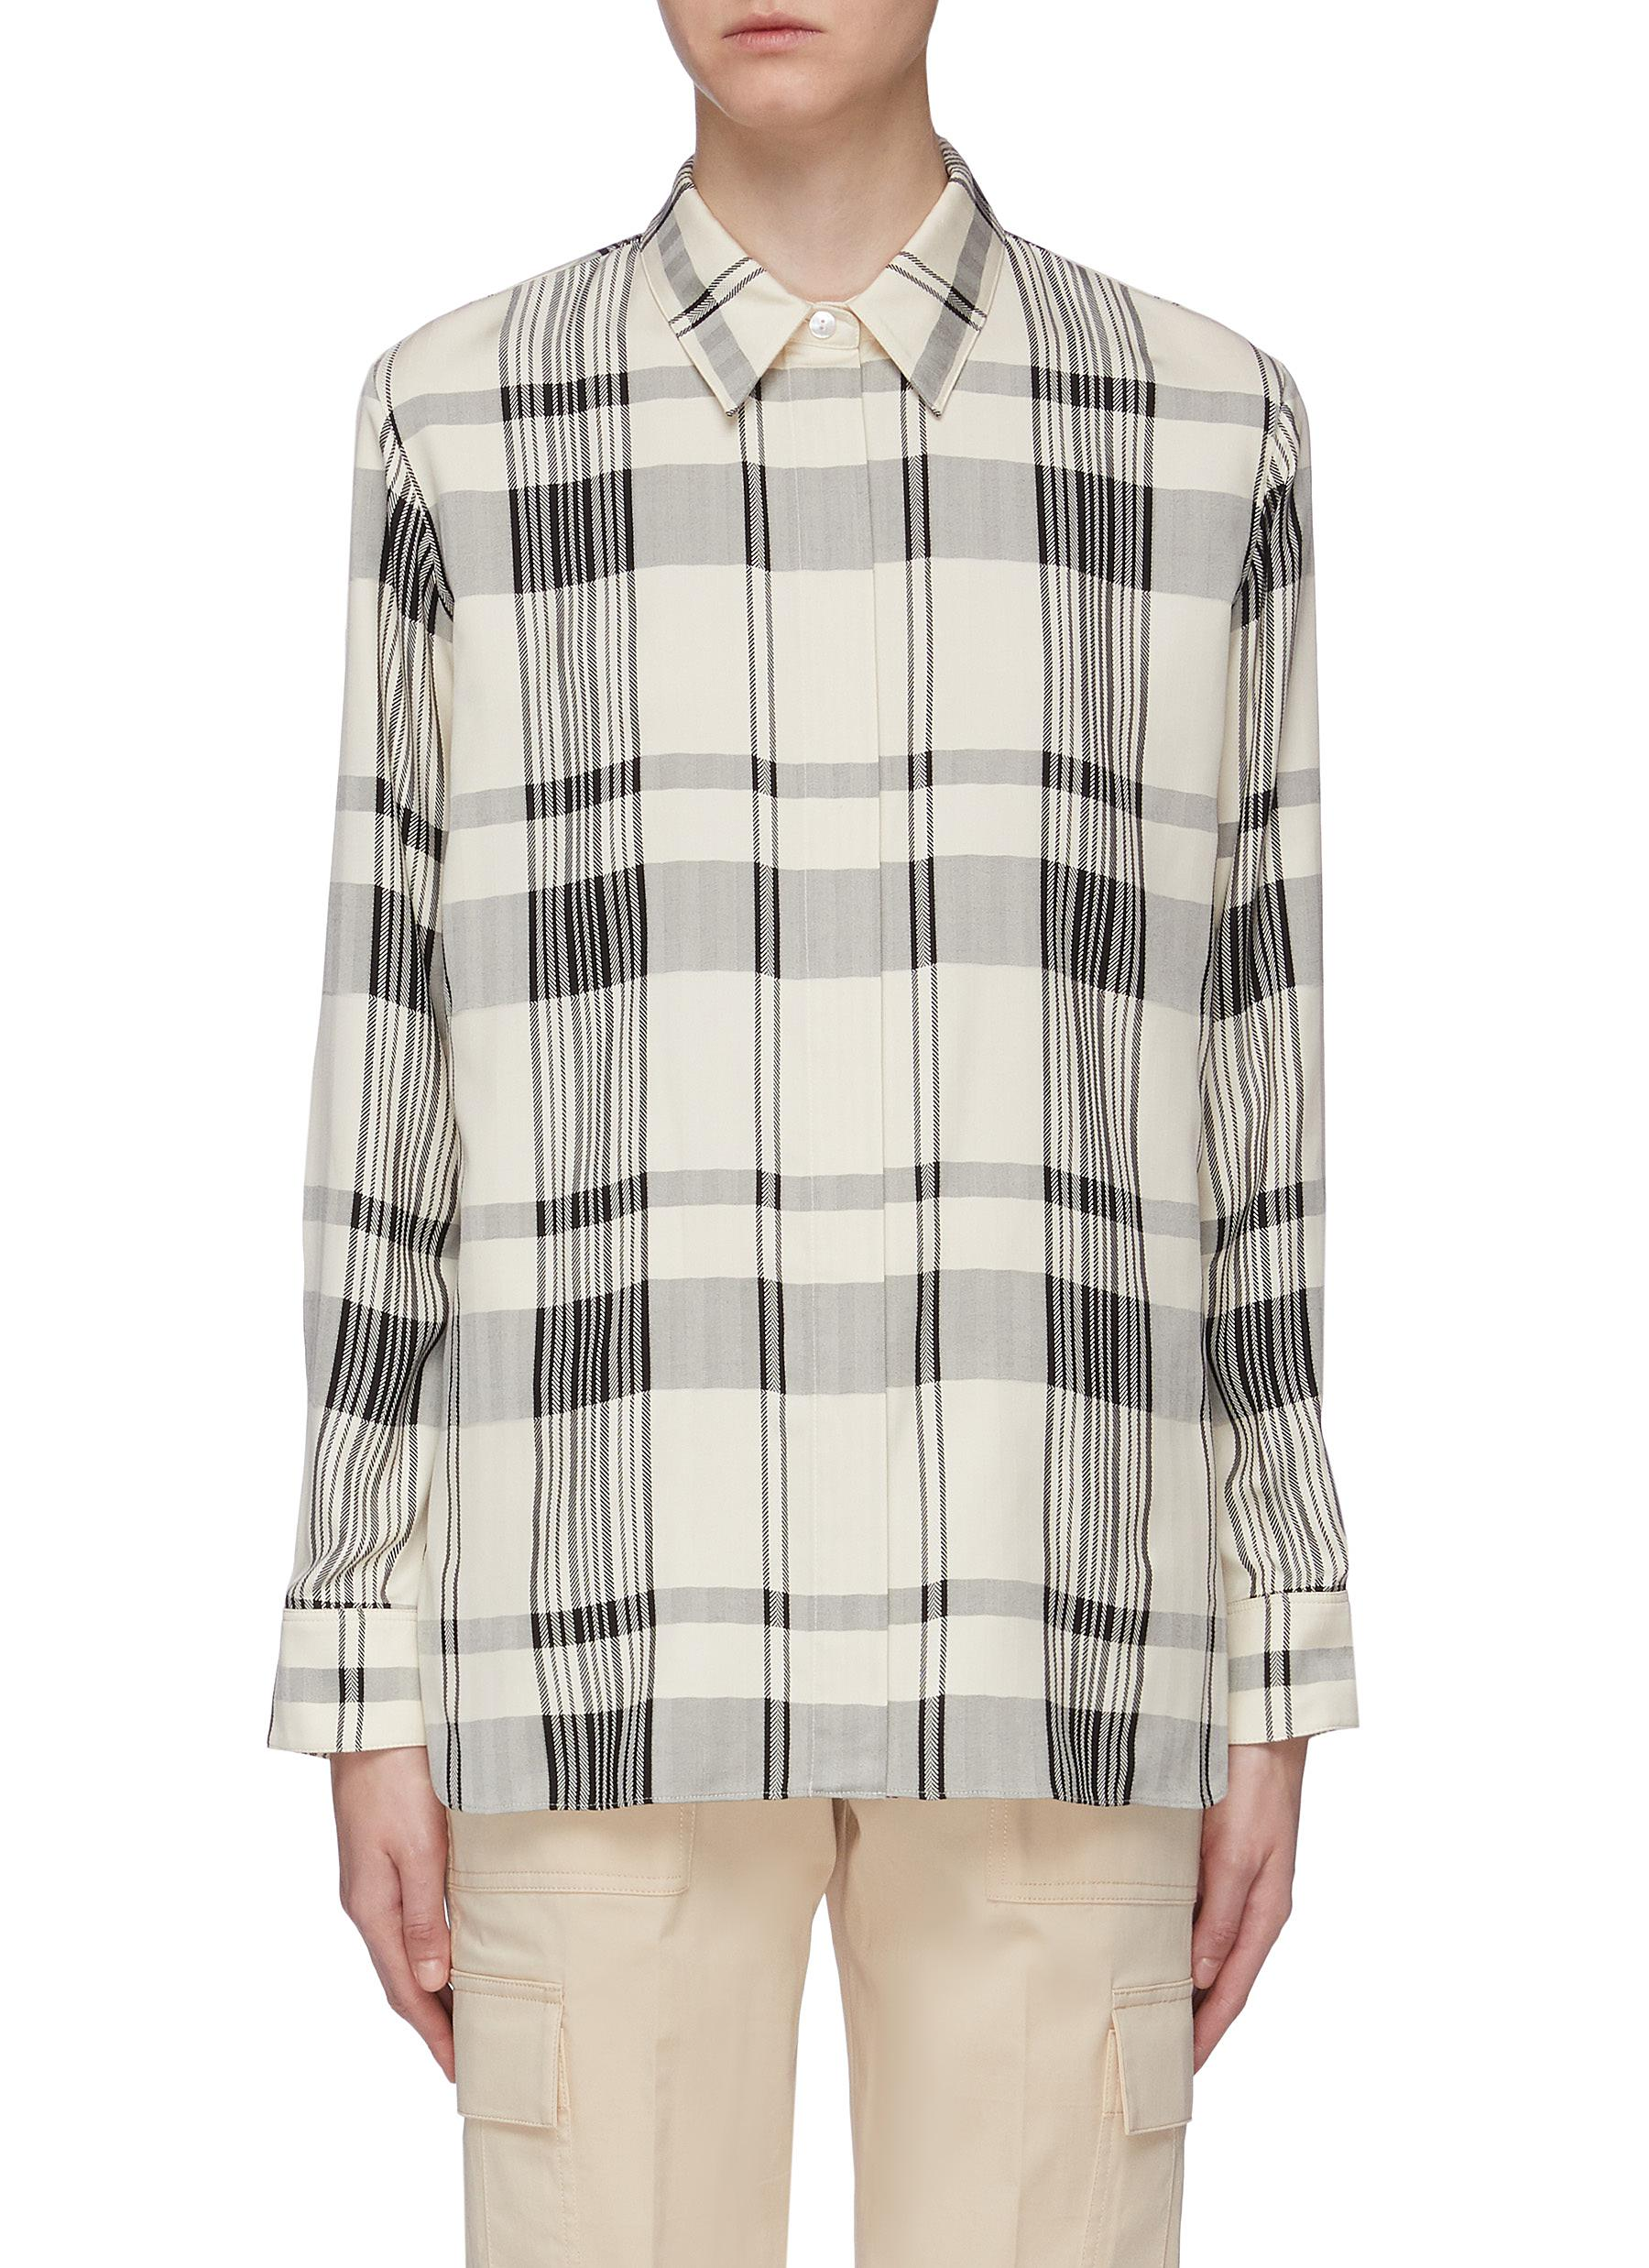 Classic tartan plaid oversized herringbone shirt by Theory